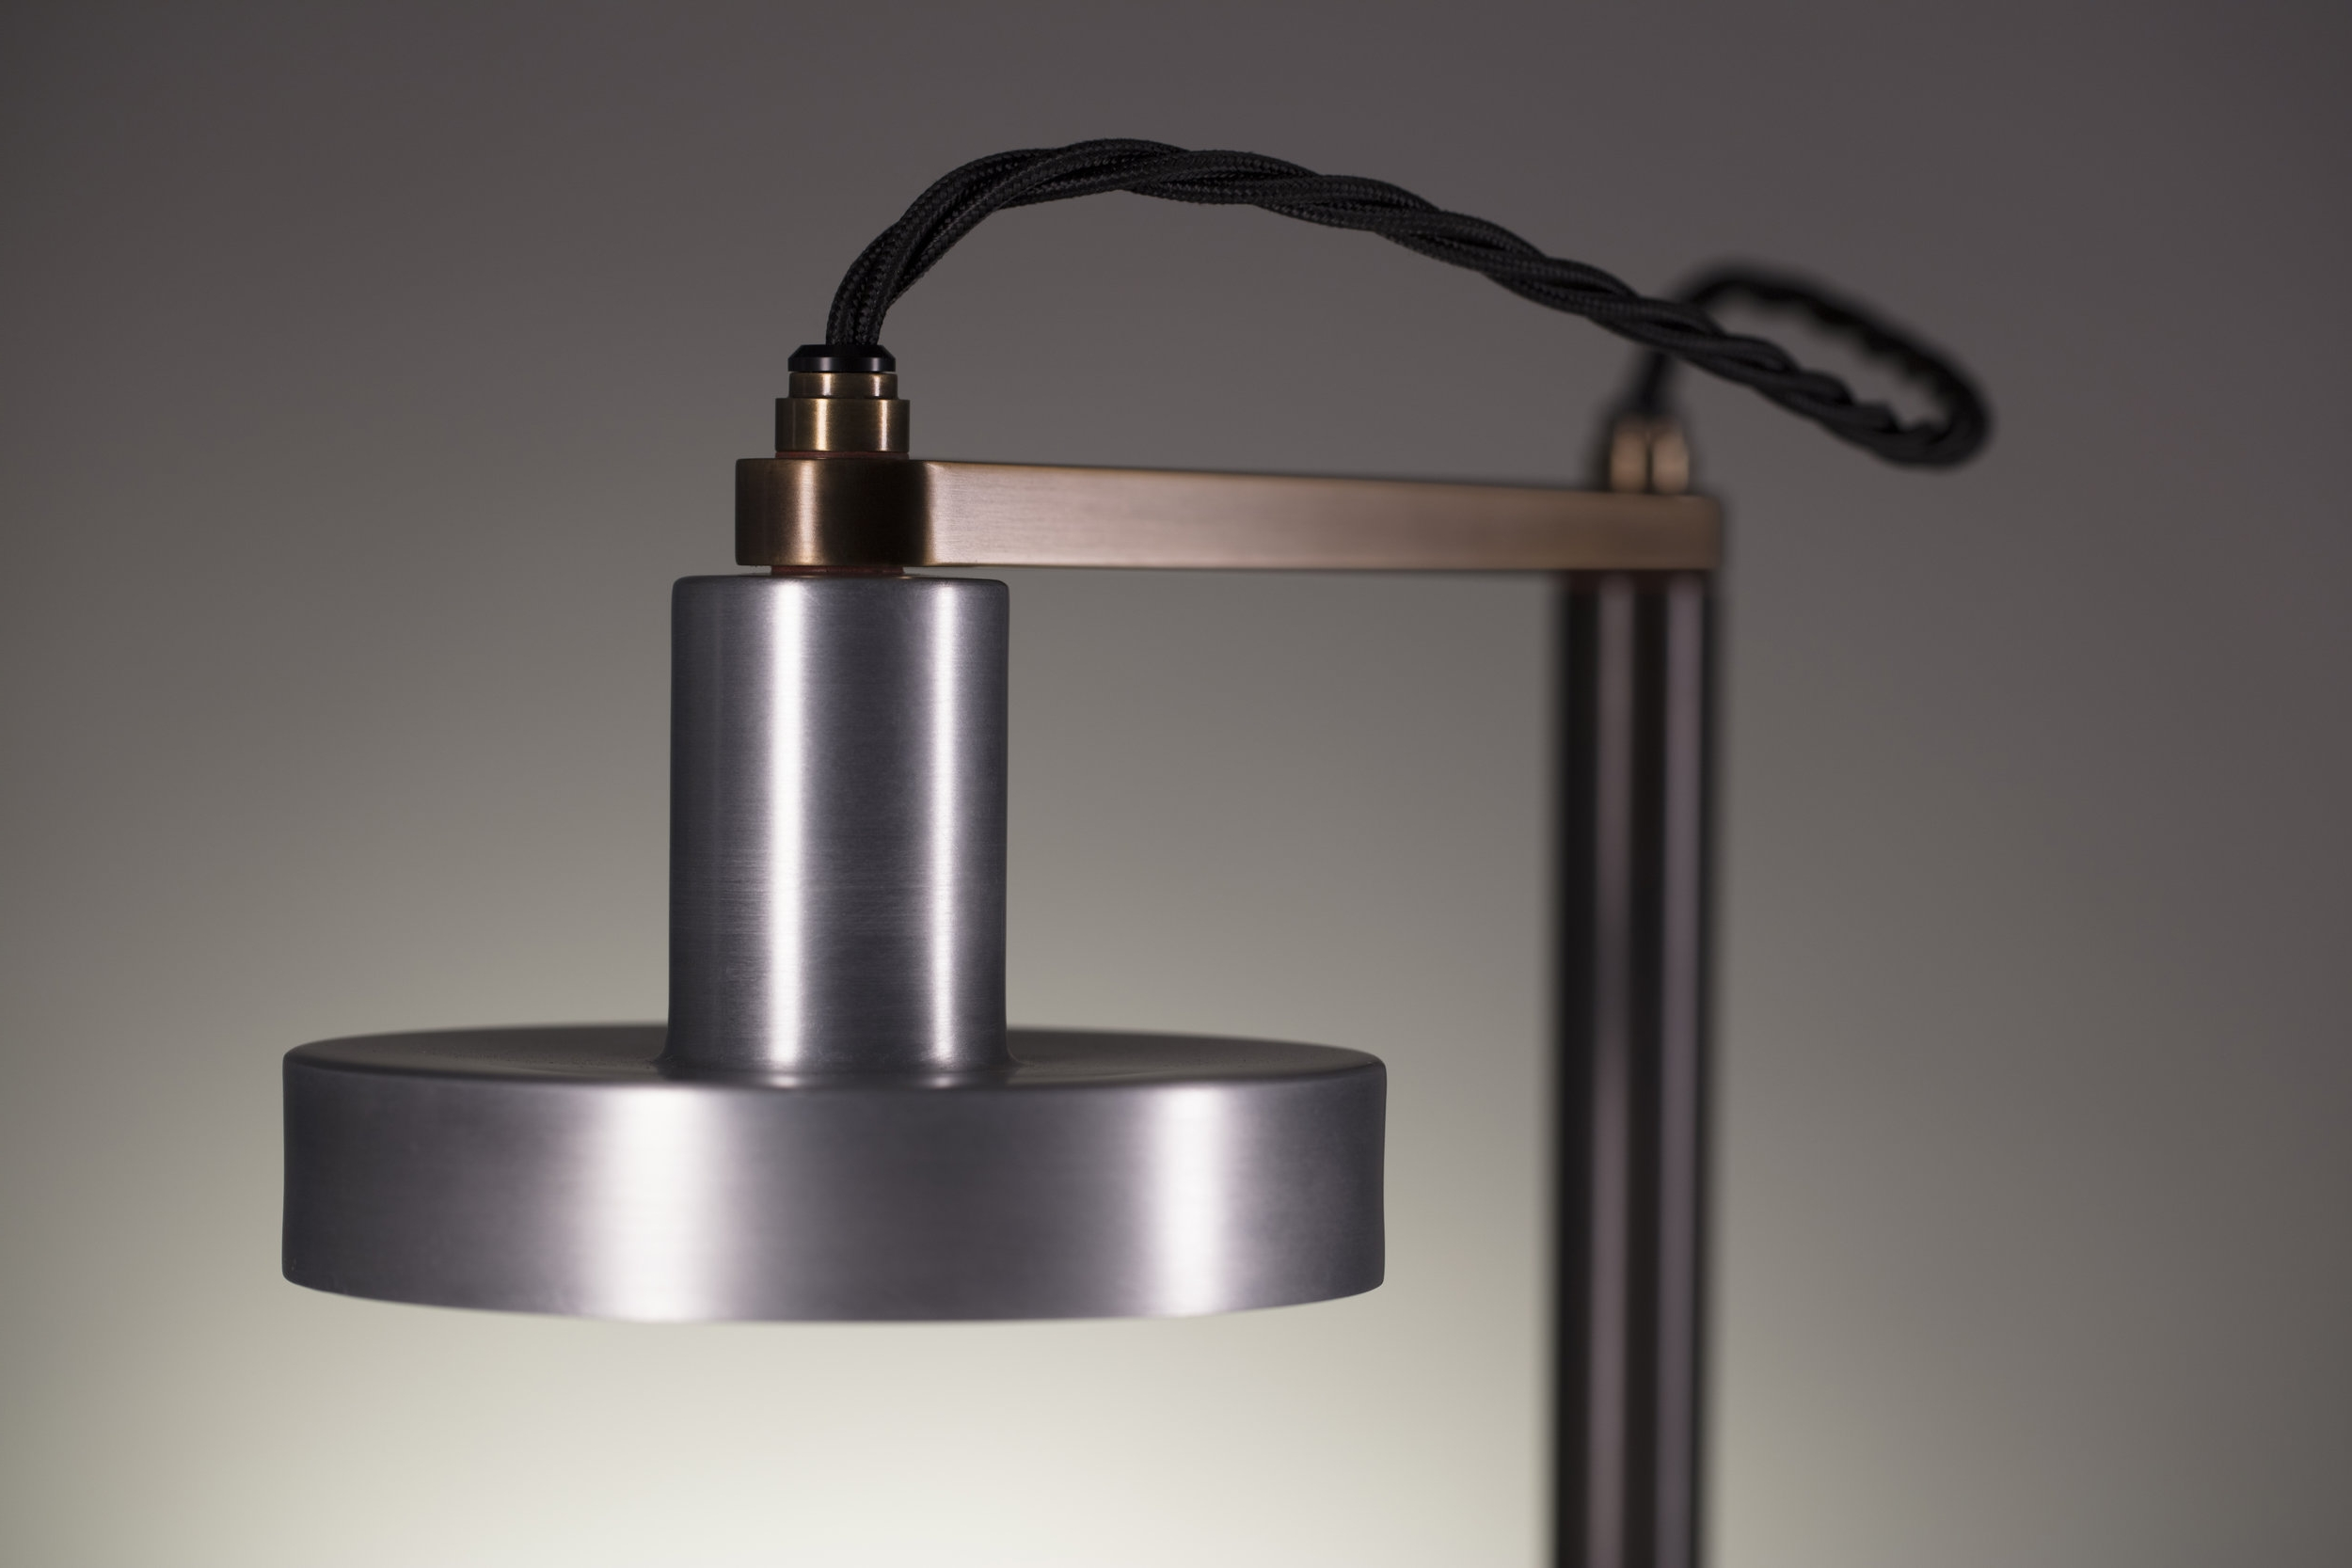 APD Argosy Product Division Delta Lamp  Industrial & modern product design for contemporary interiors. We believe in quality, simplicity, craftsmanship, and attention to detail.